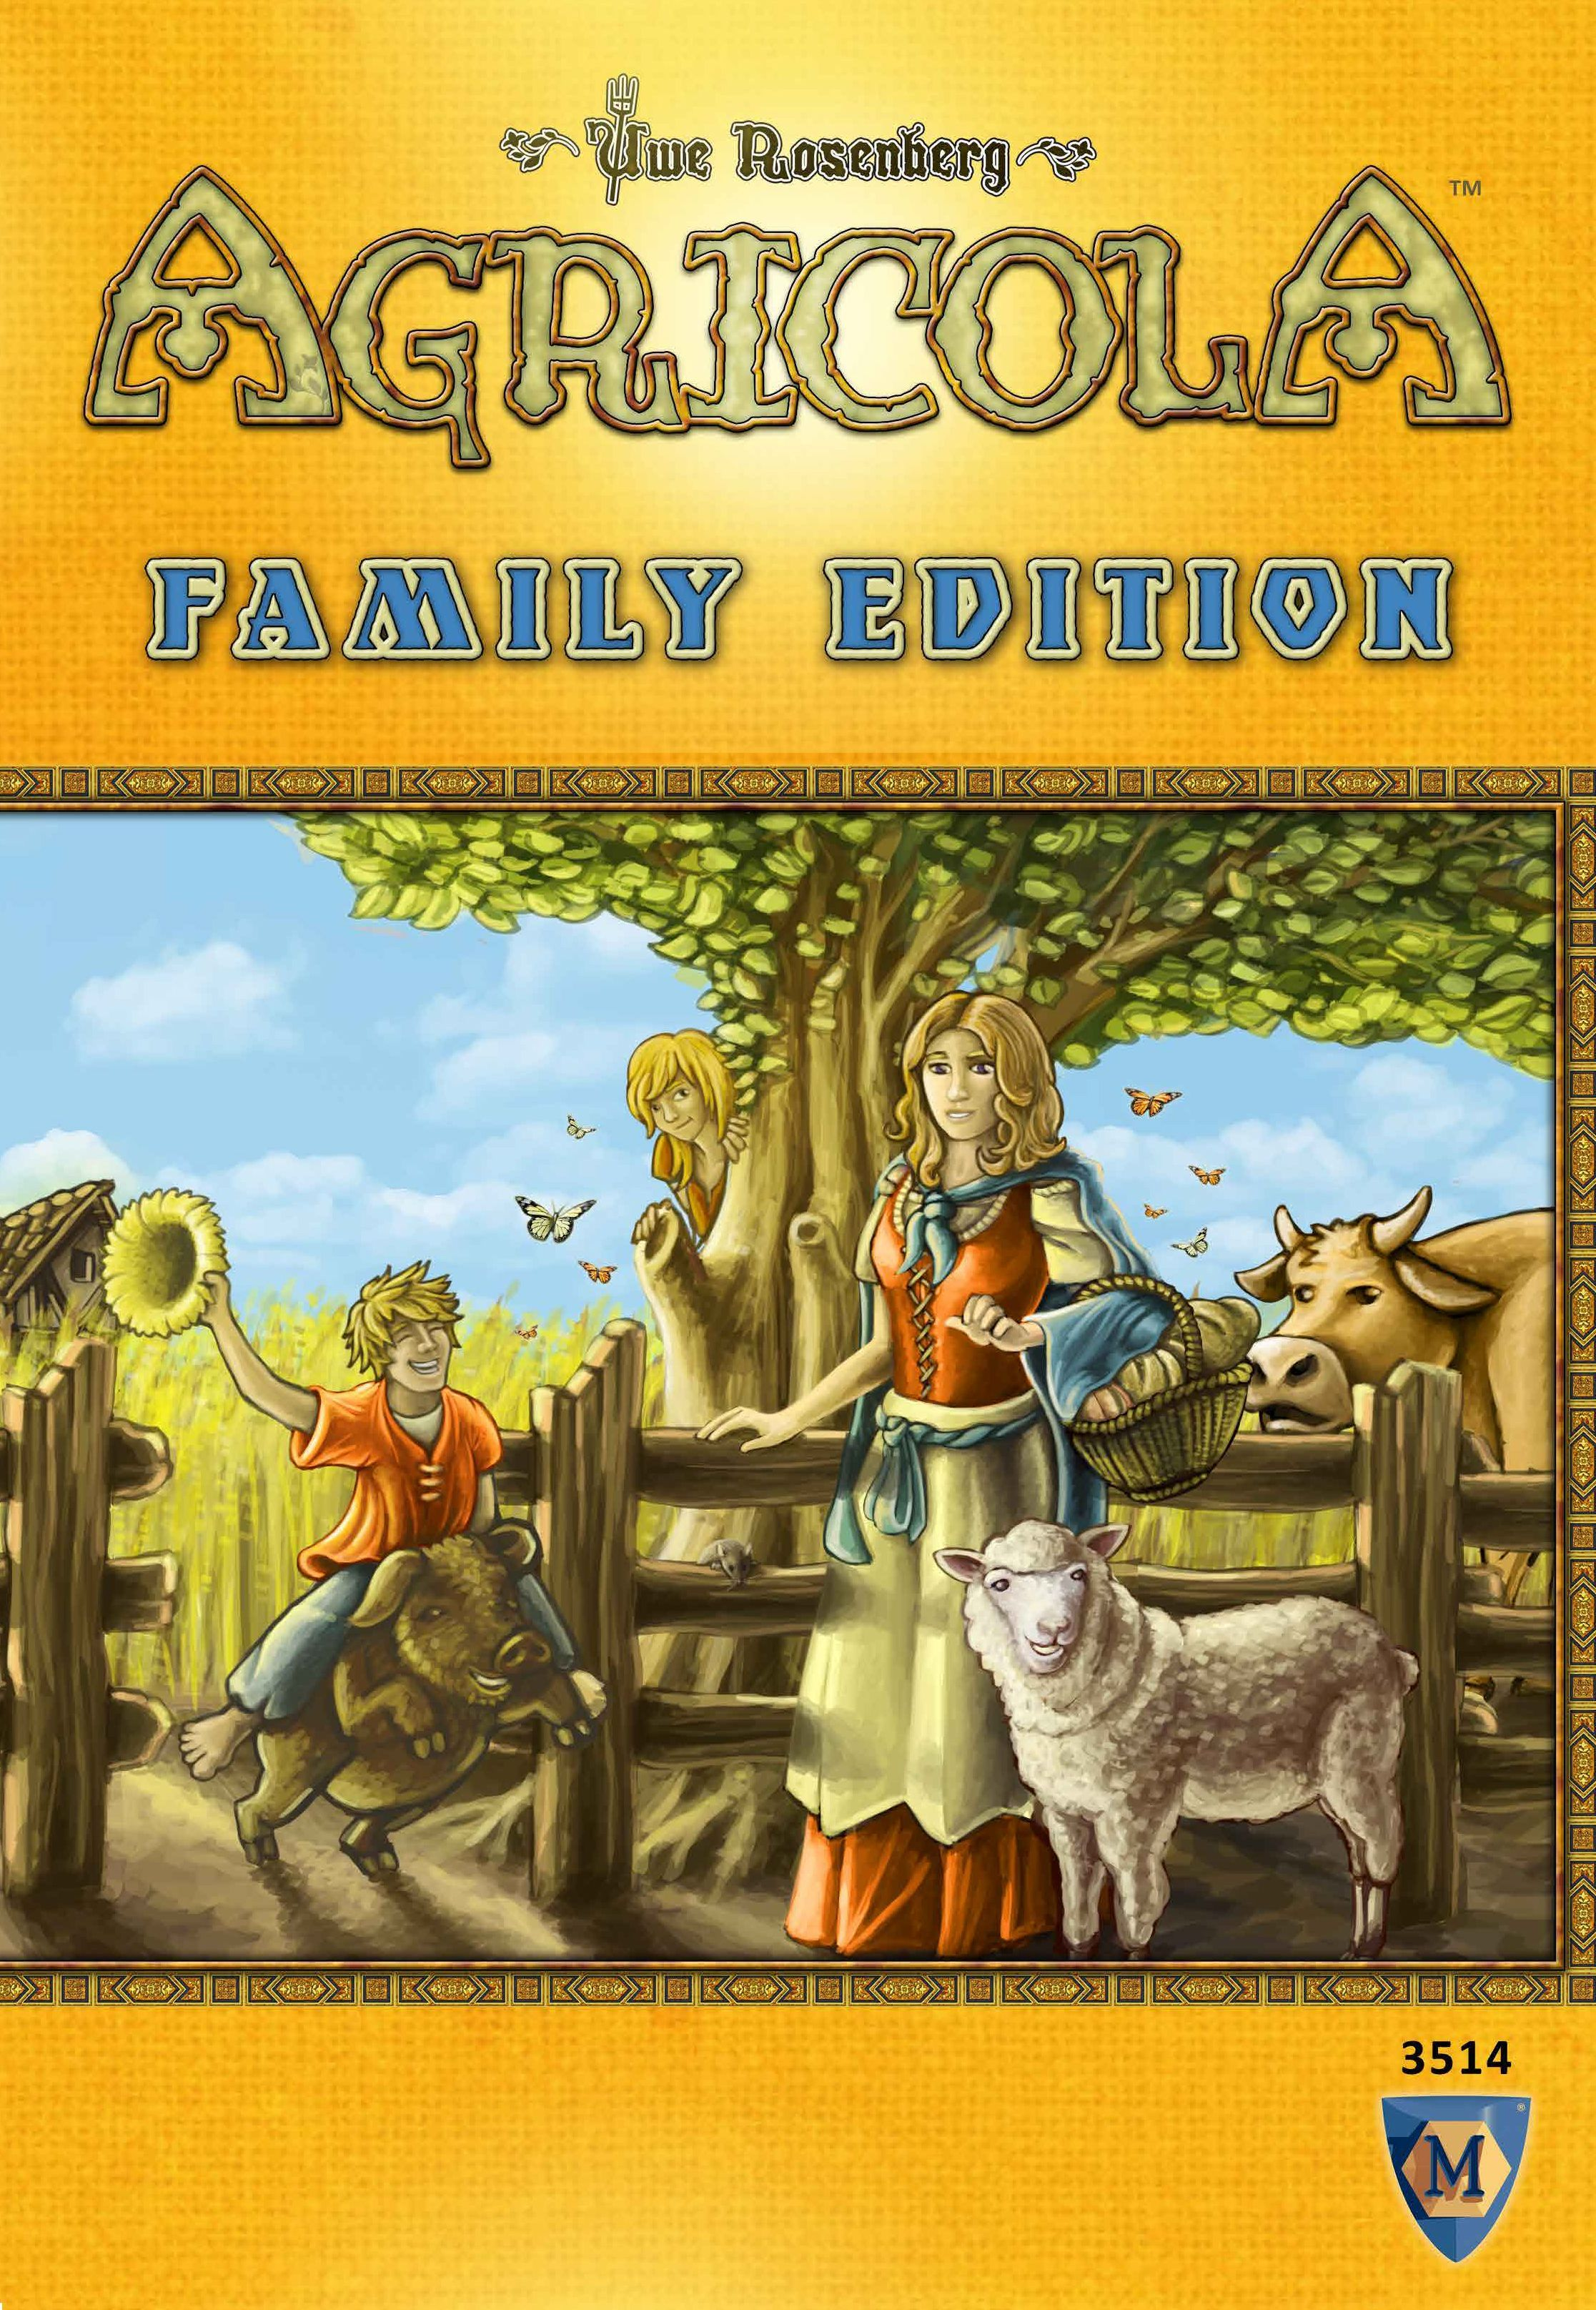 Main image for Agricola: Family Edition